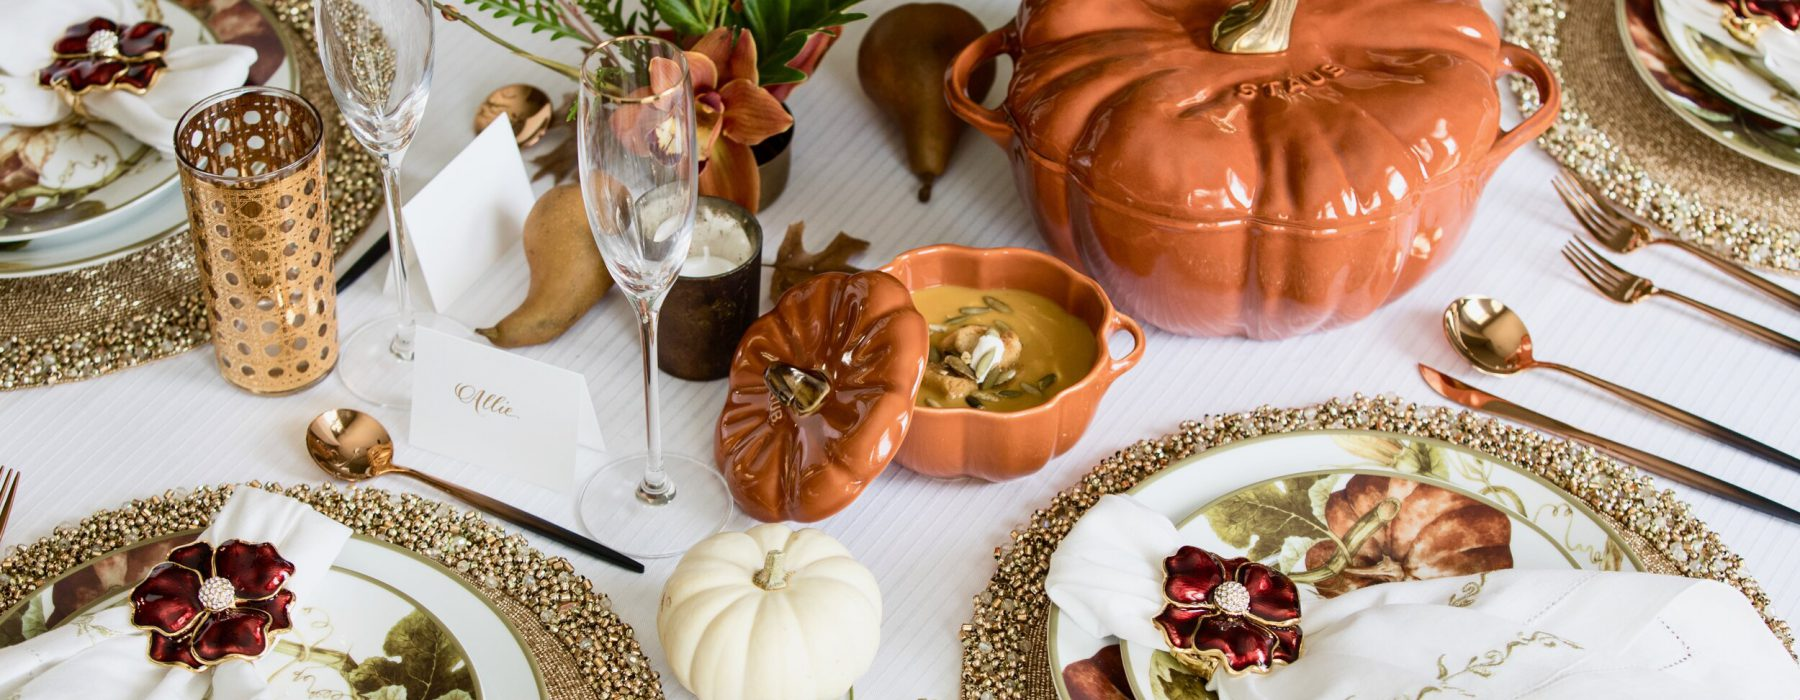 6 Instagram-Inspired (And Easy!) Thanksgiving Table Ideas